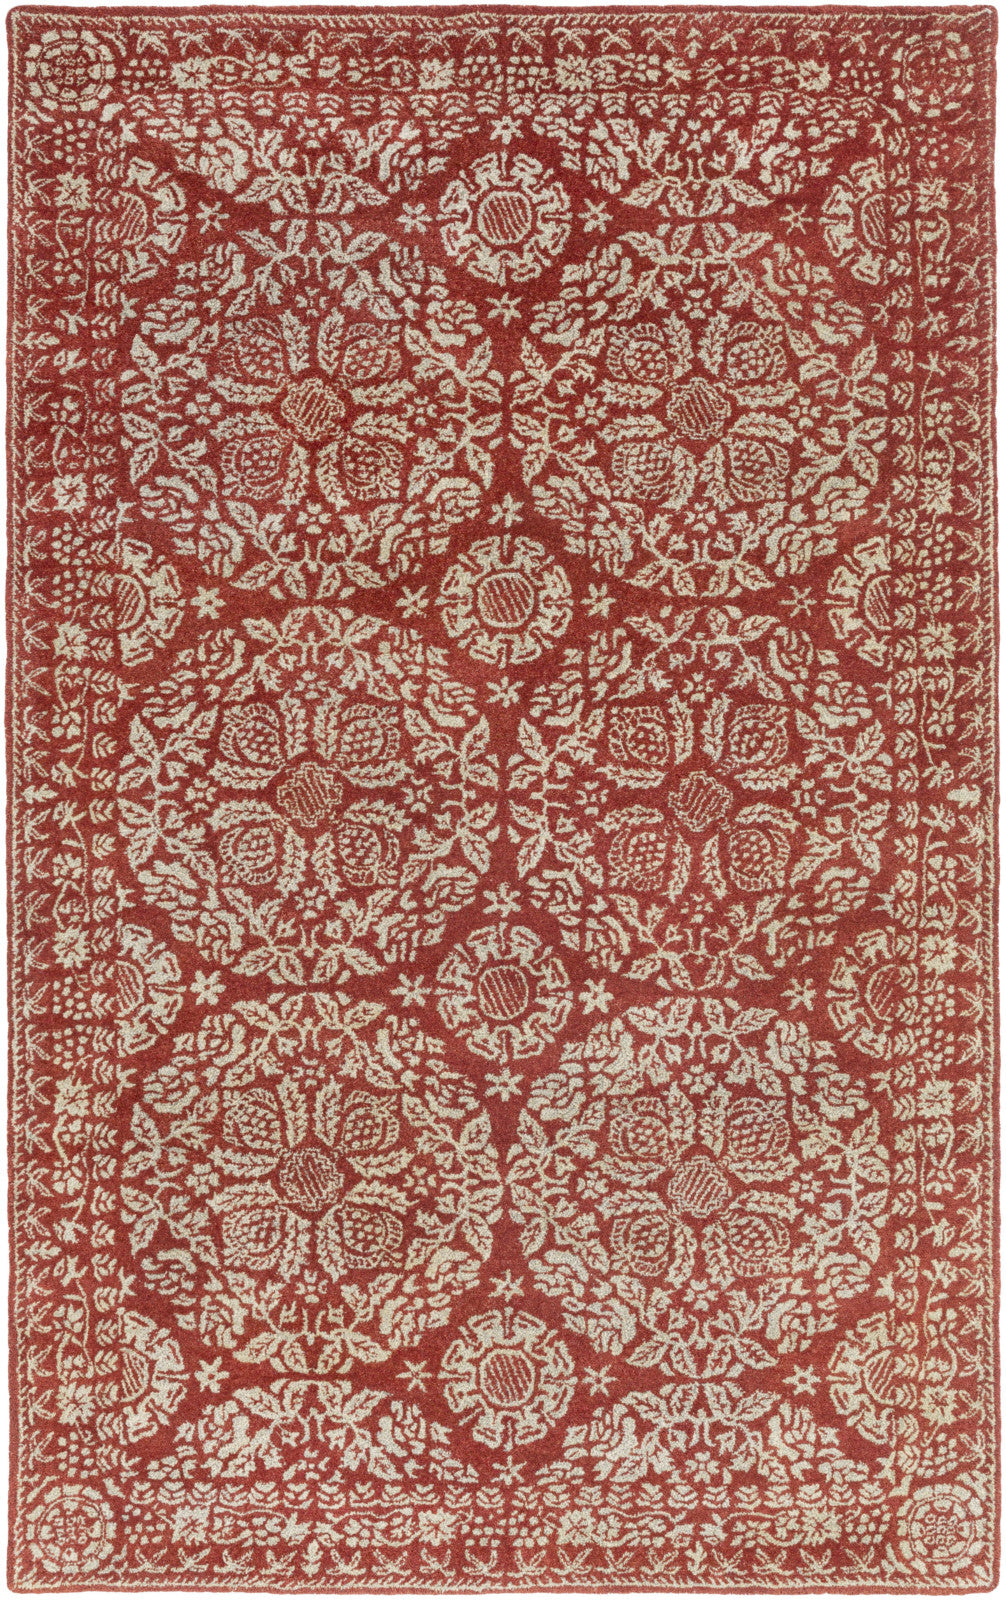 Surya SMI-2154 Red Area Rug by Smithsonian